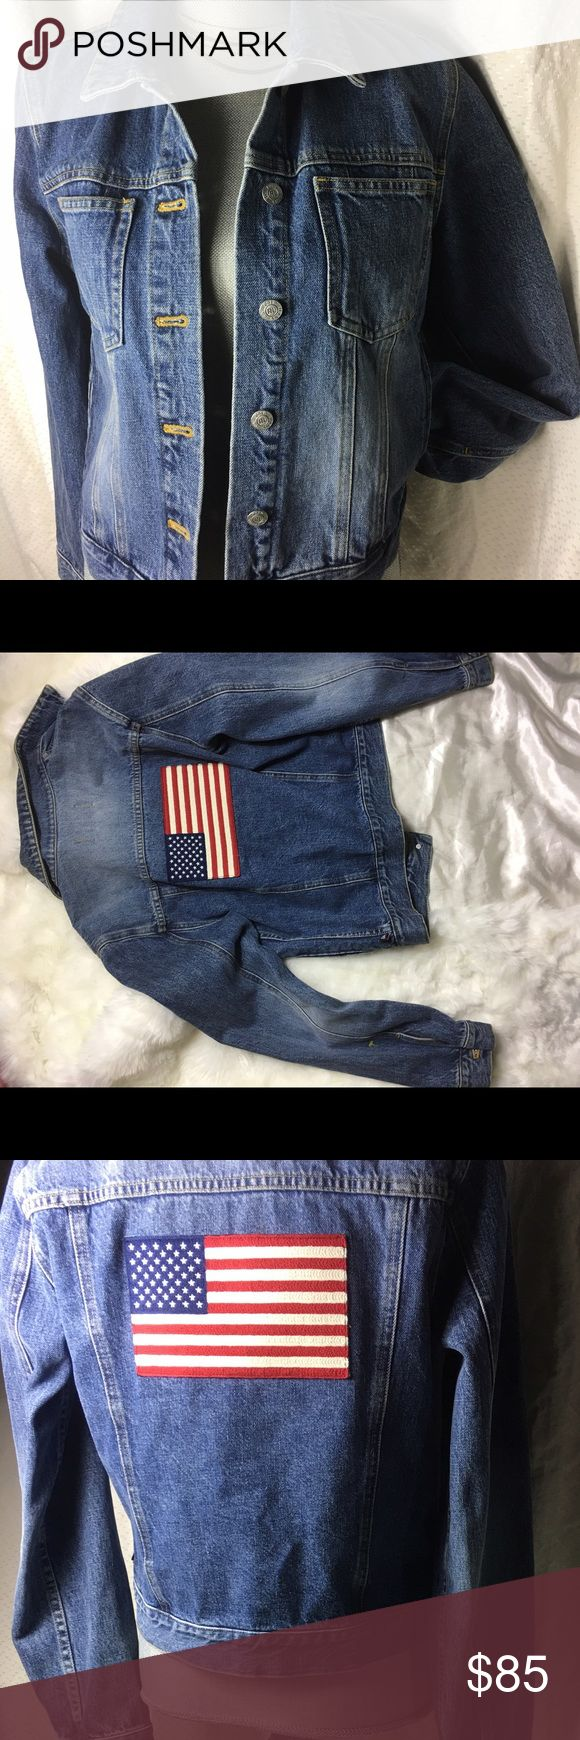 american flag back patch